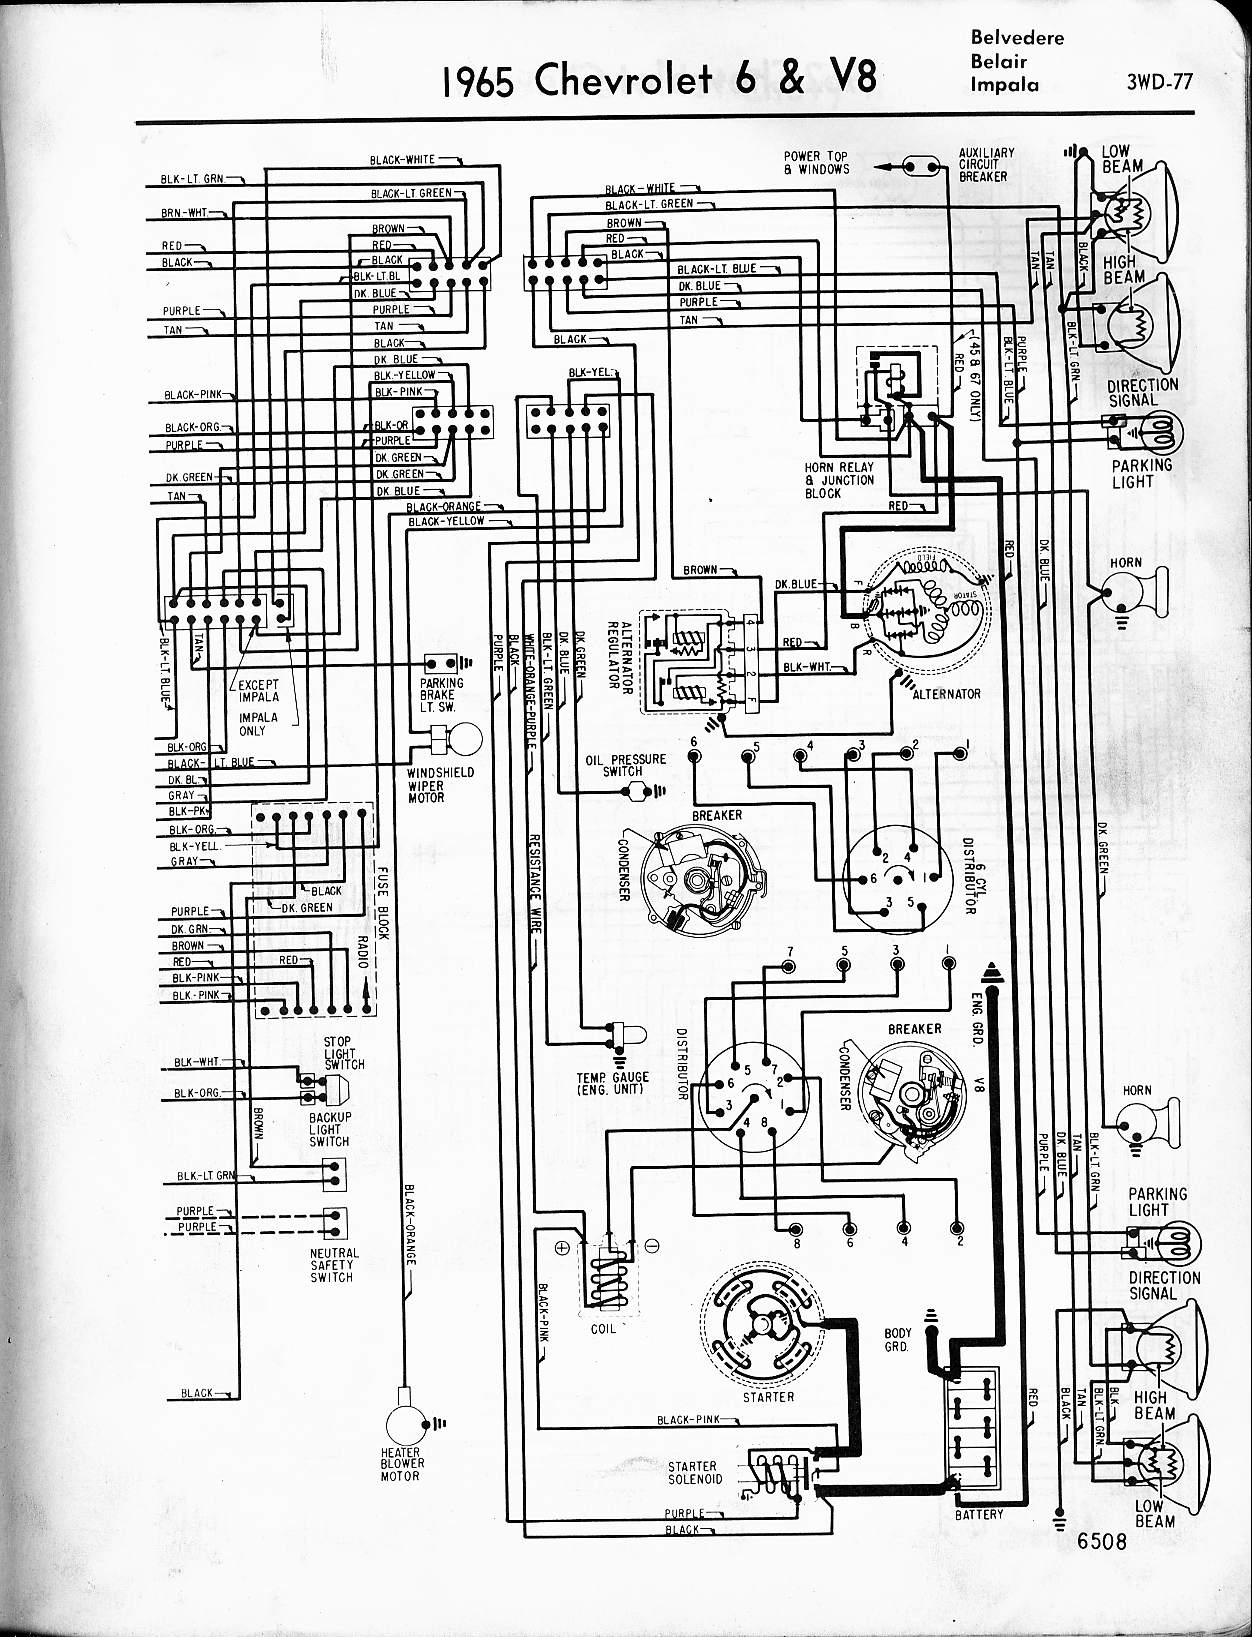 1970 jeepster commando wiring diagram wiring diagram